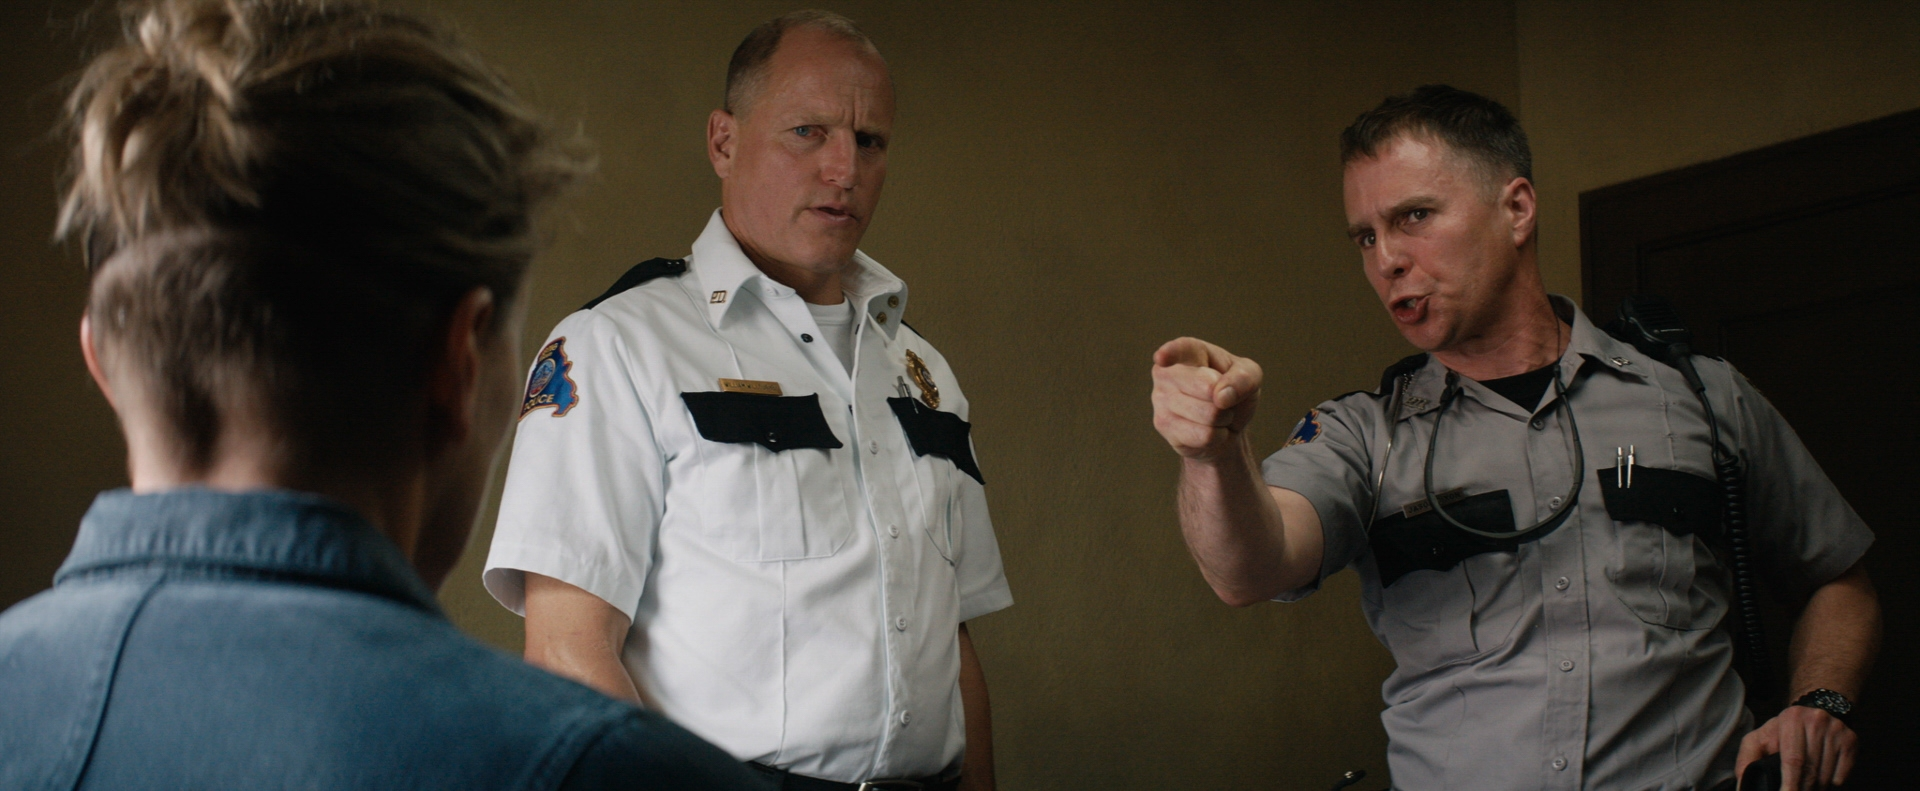 Woody Harrelson and Sam Rockwell in the film THREE BILLBOARDS OUTSIDE EBBING, MISSOURI. Photo courtesy of Fox Searchlight Pictures.© 2017 Twentieth Century Fox Film Corporation All Rights Reserved